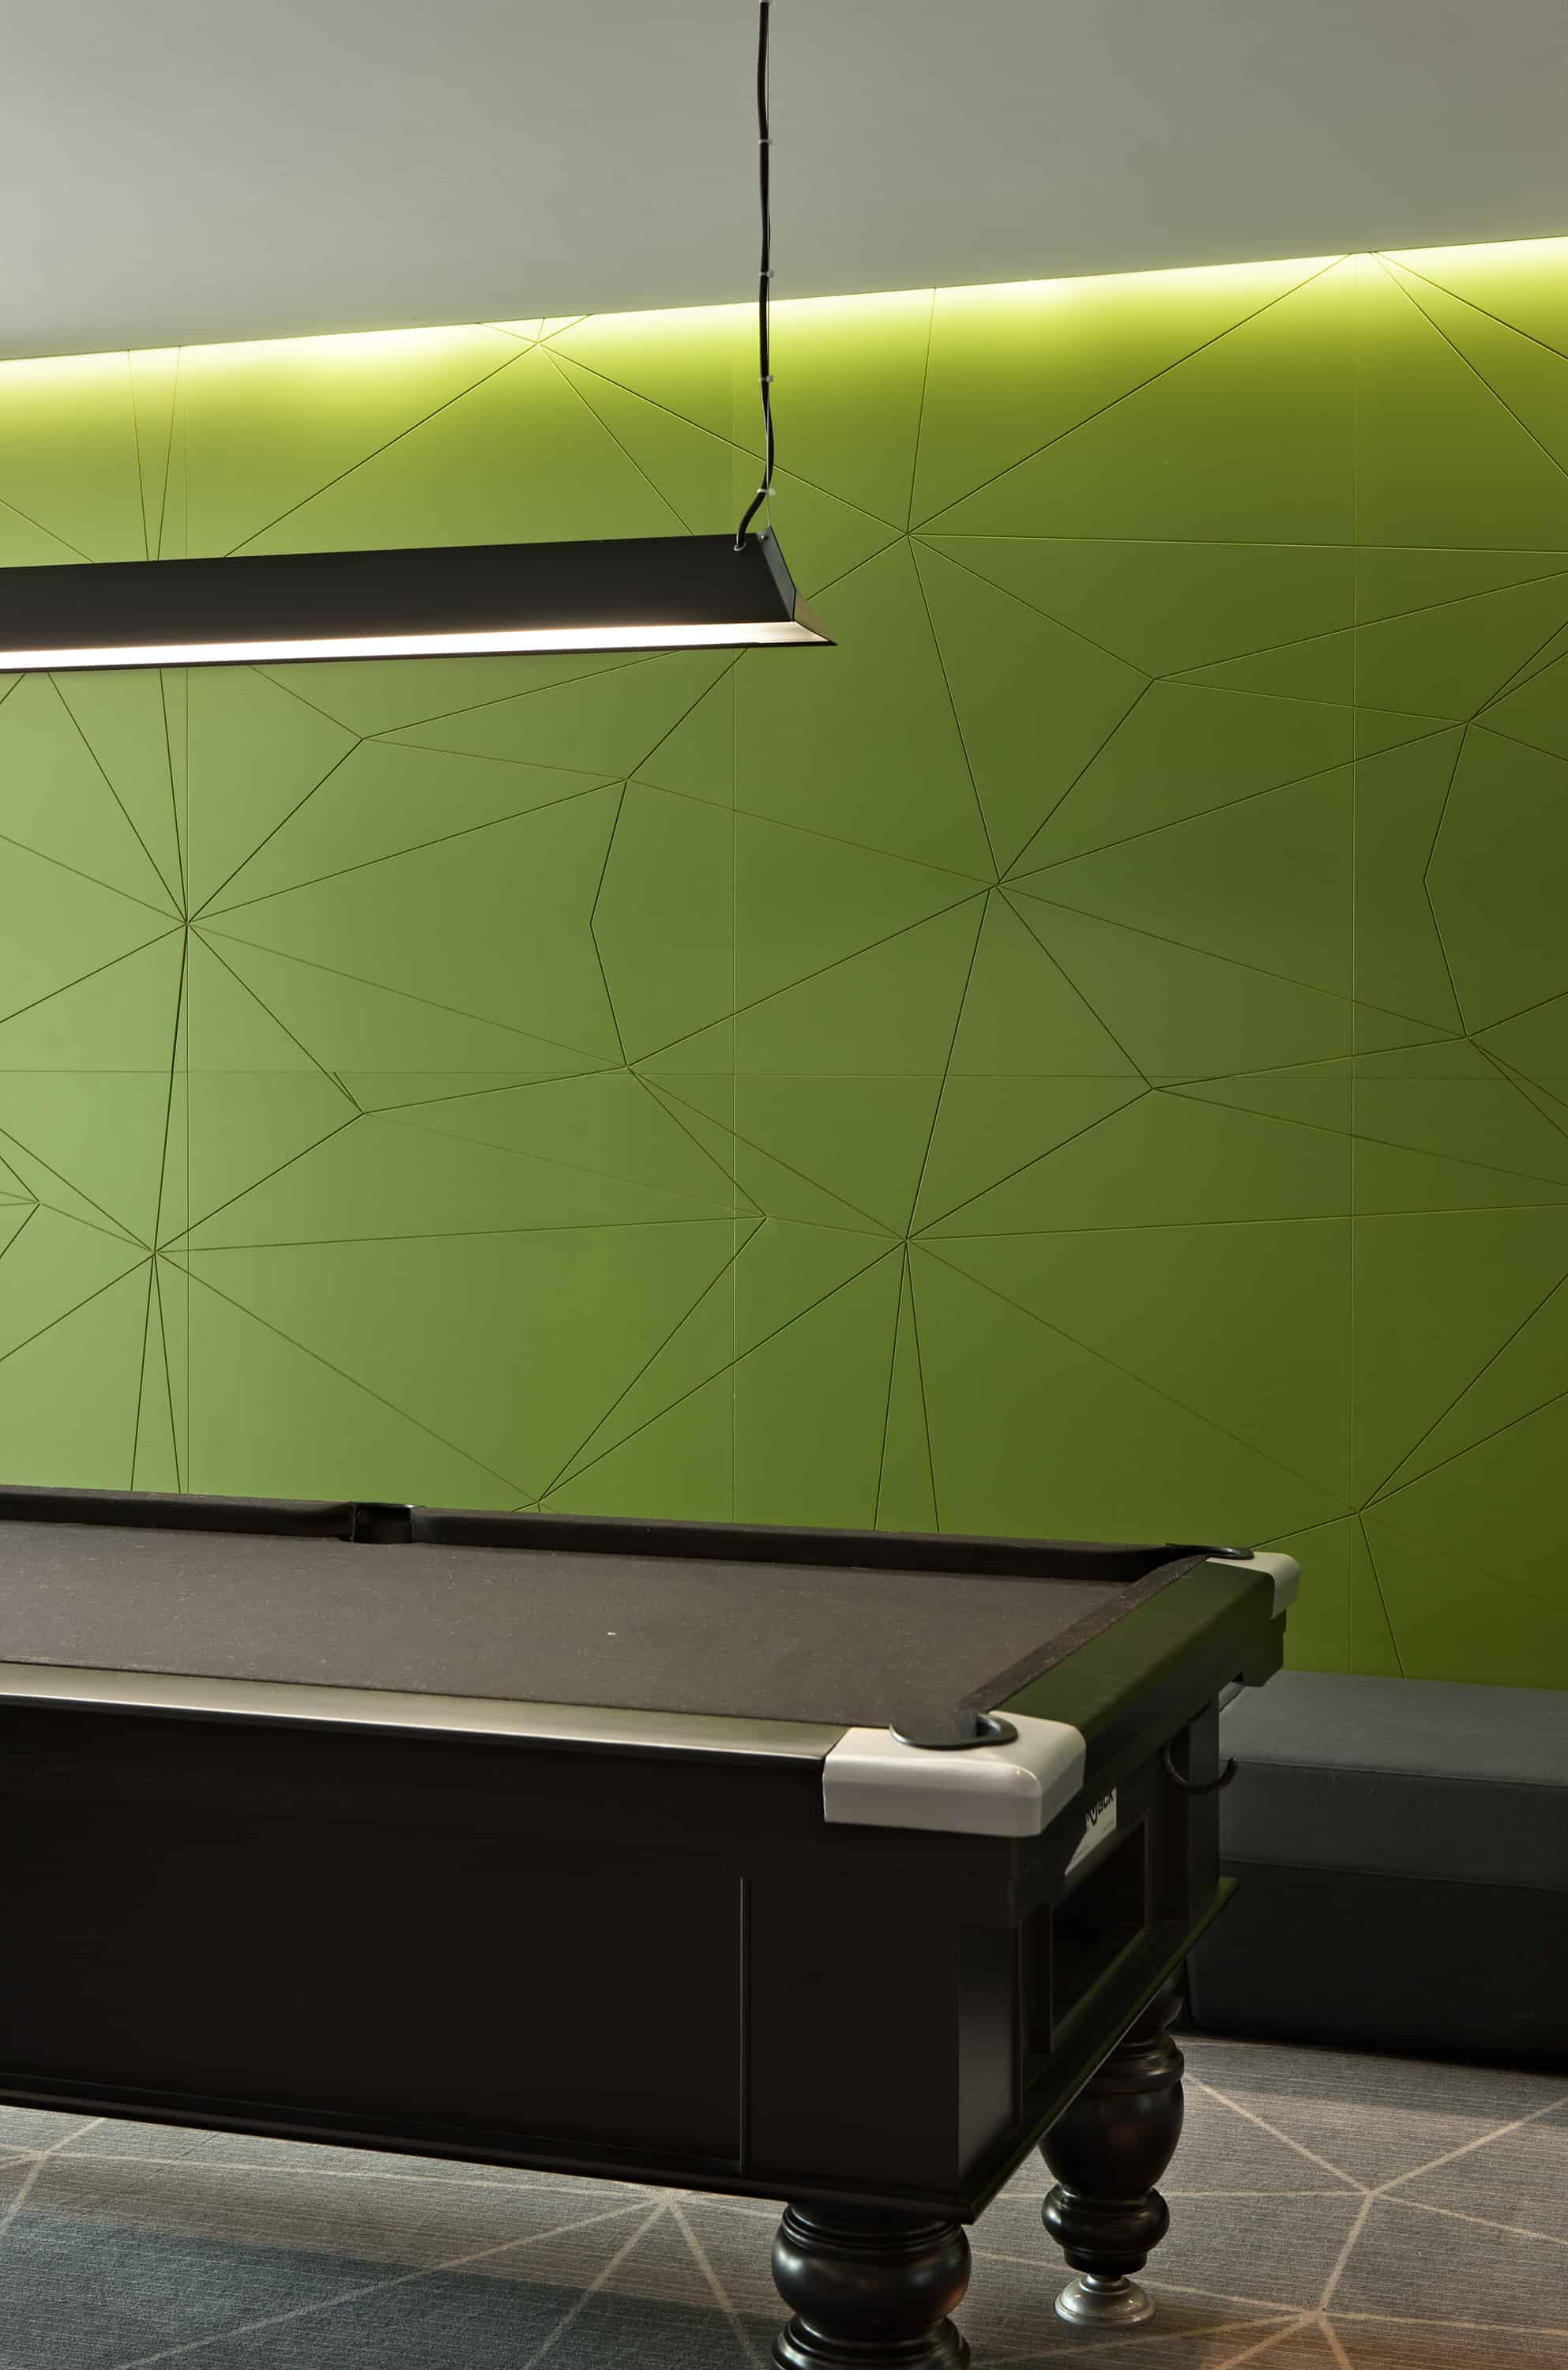 Citrix office in Auckland workplace lunchroom breakout design with closeup of pool table